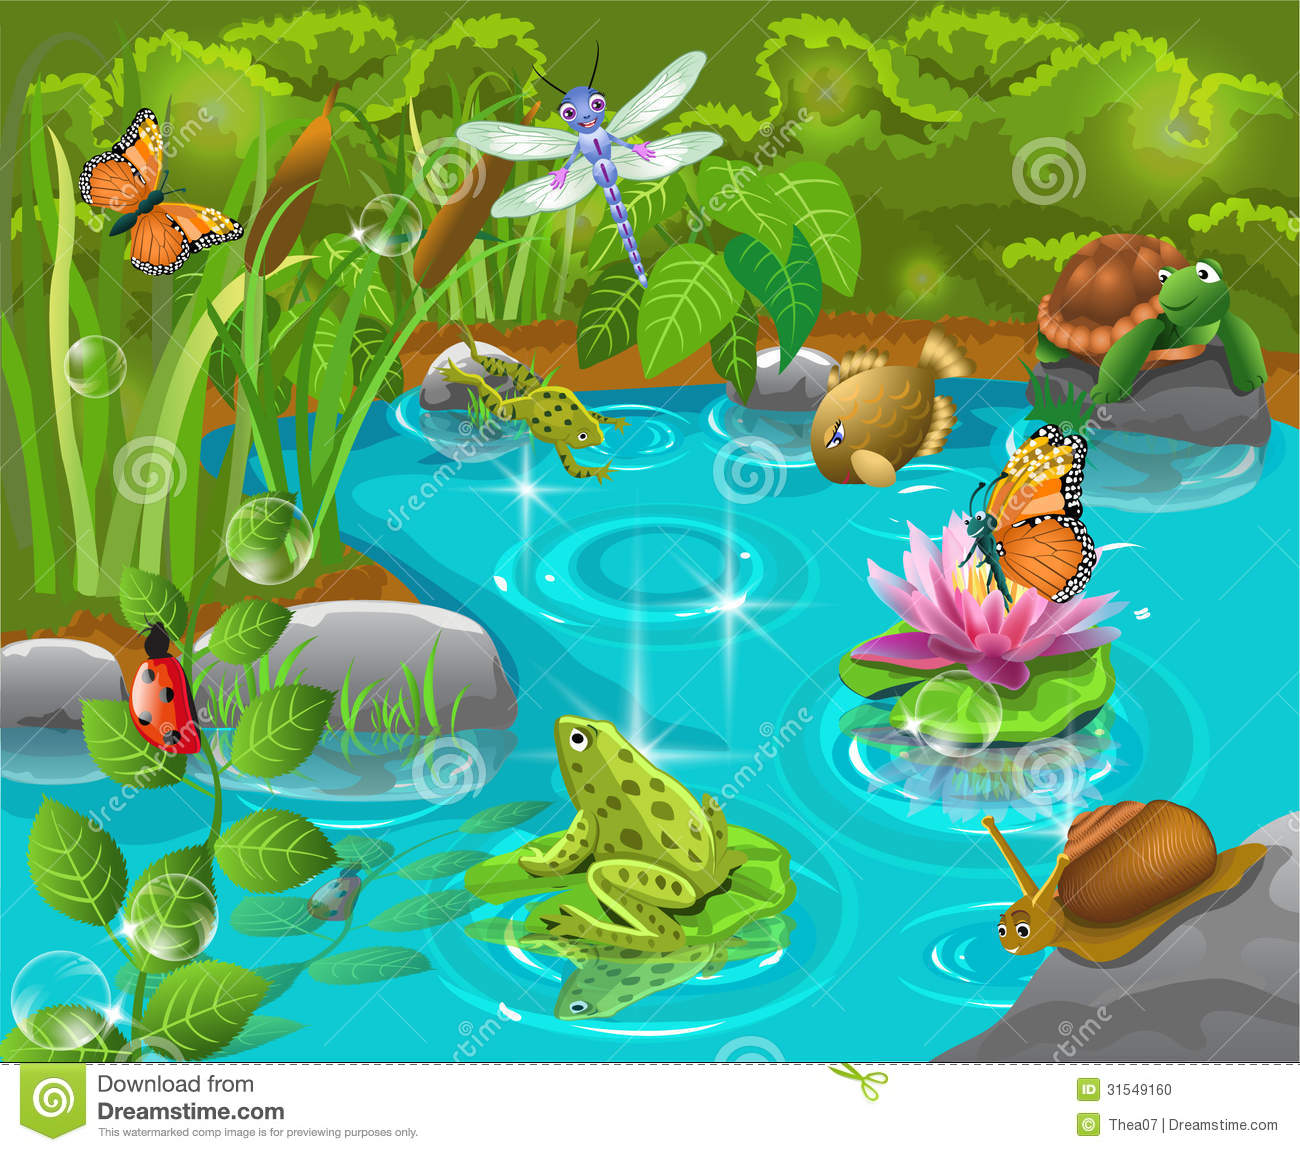 Pond Animals Living Happily Together